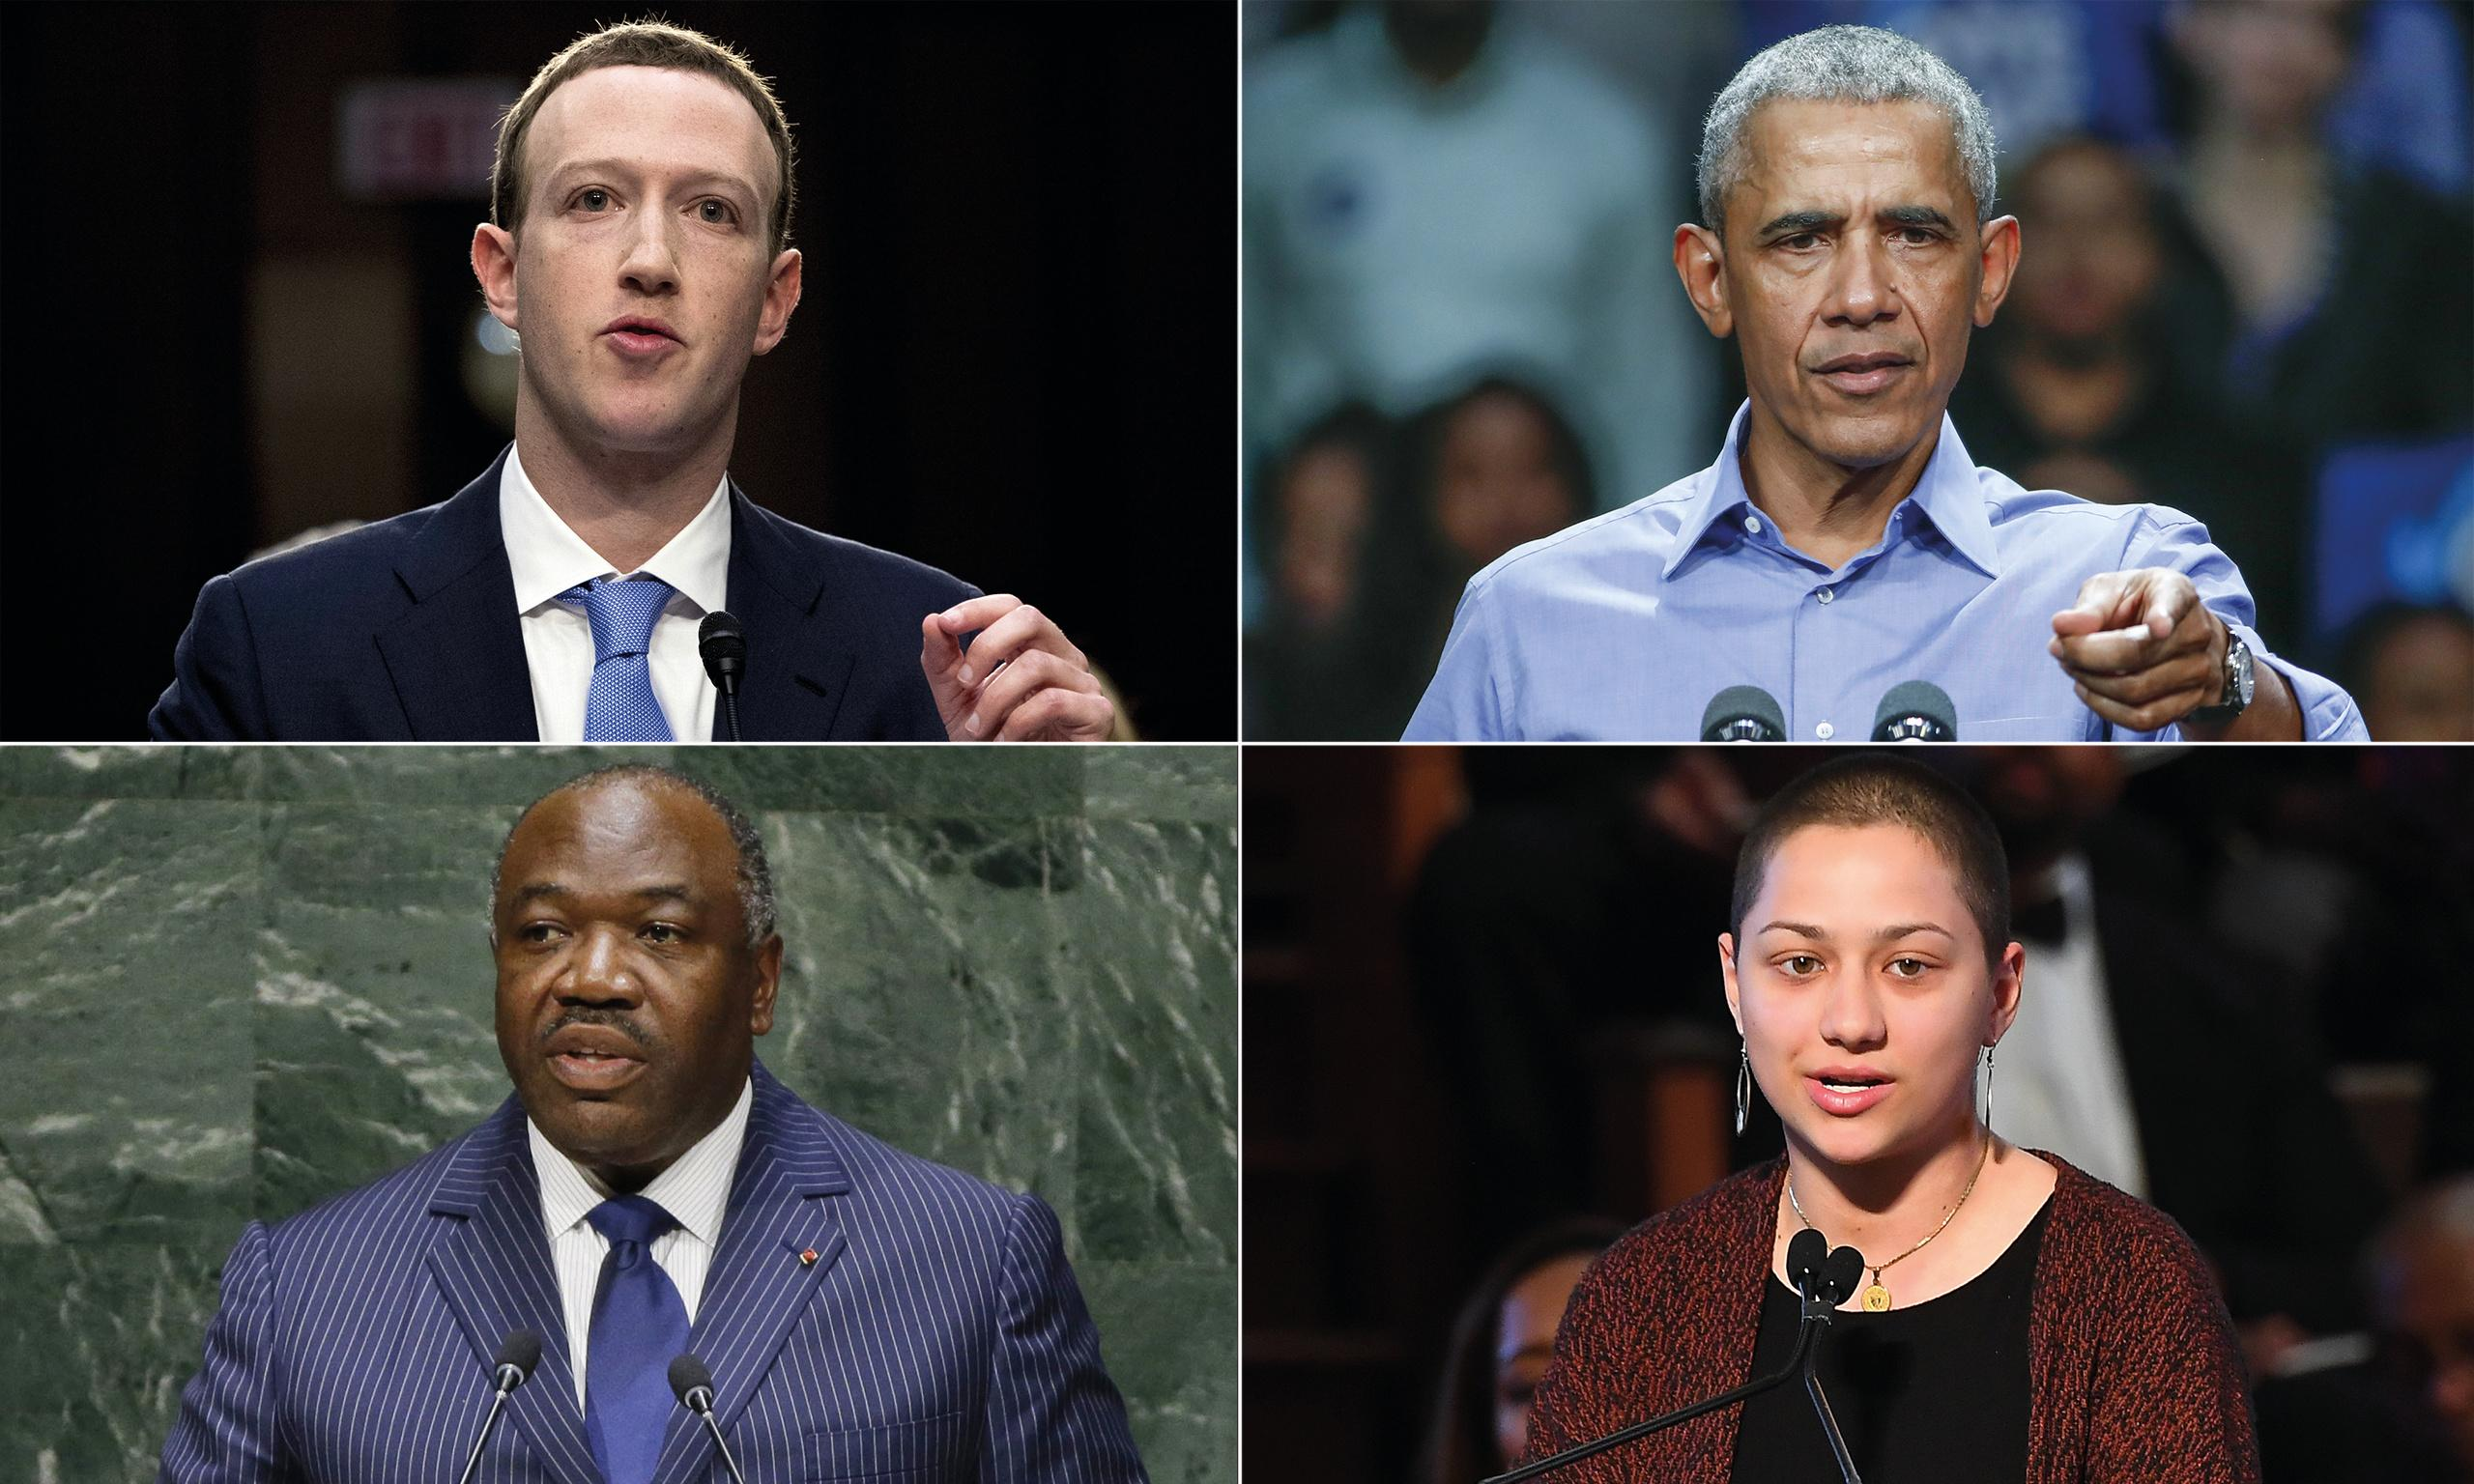 You can't believe a word any of these people is saying – that's the 'deep fake' era for you